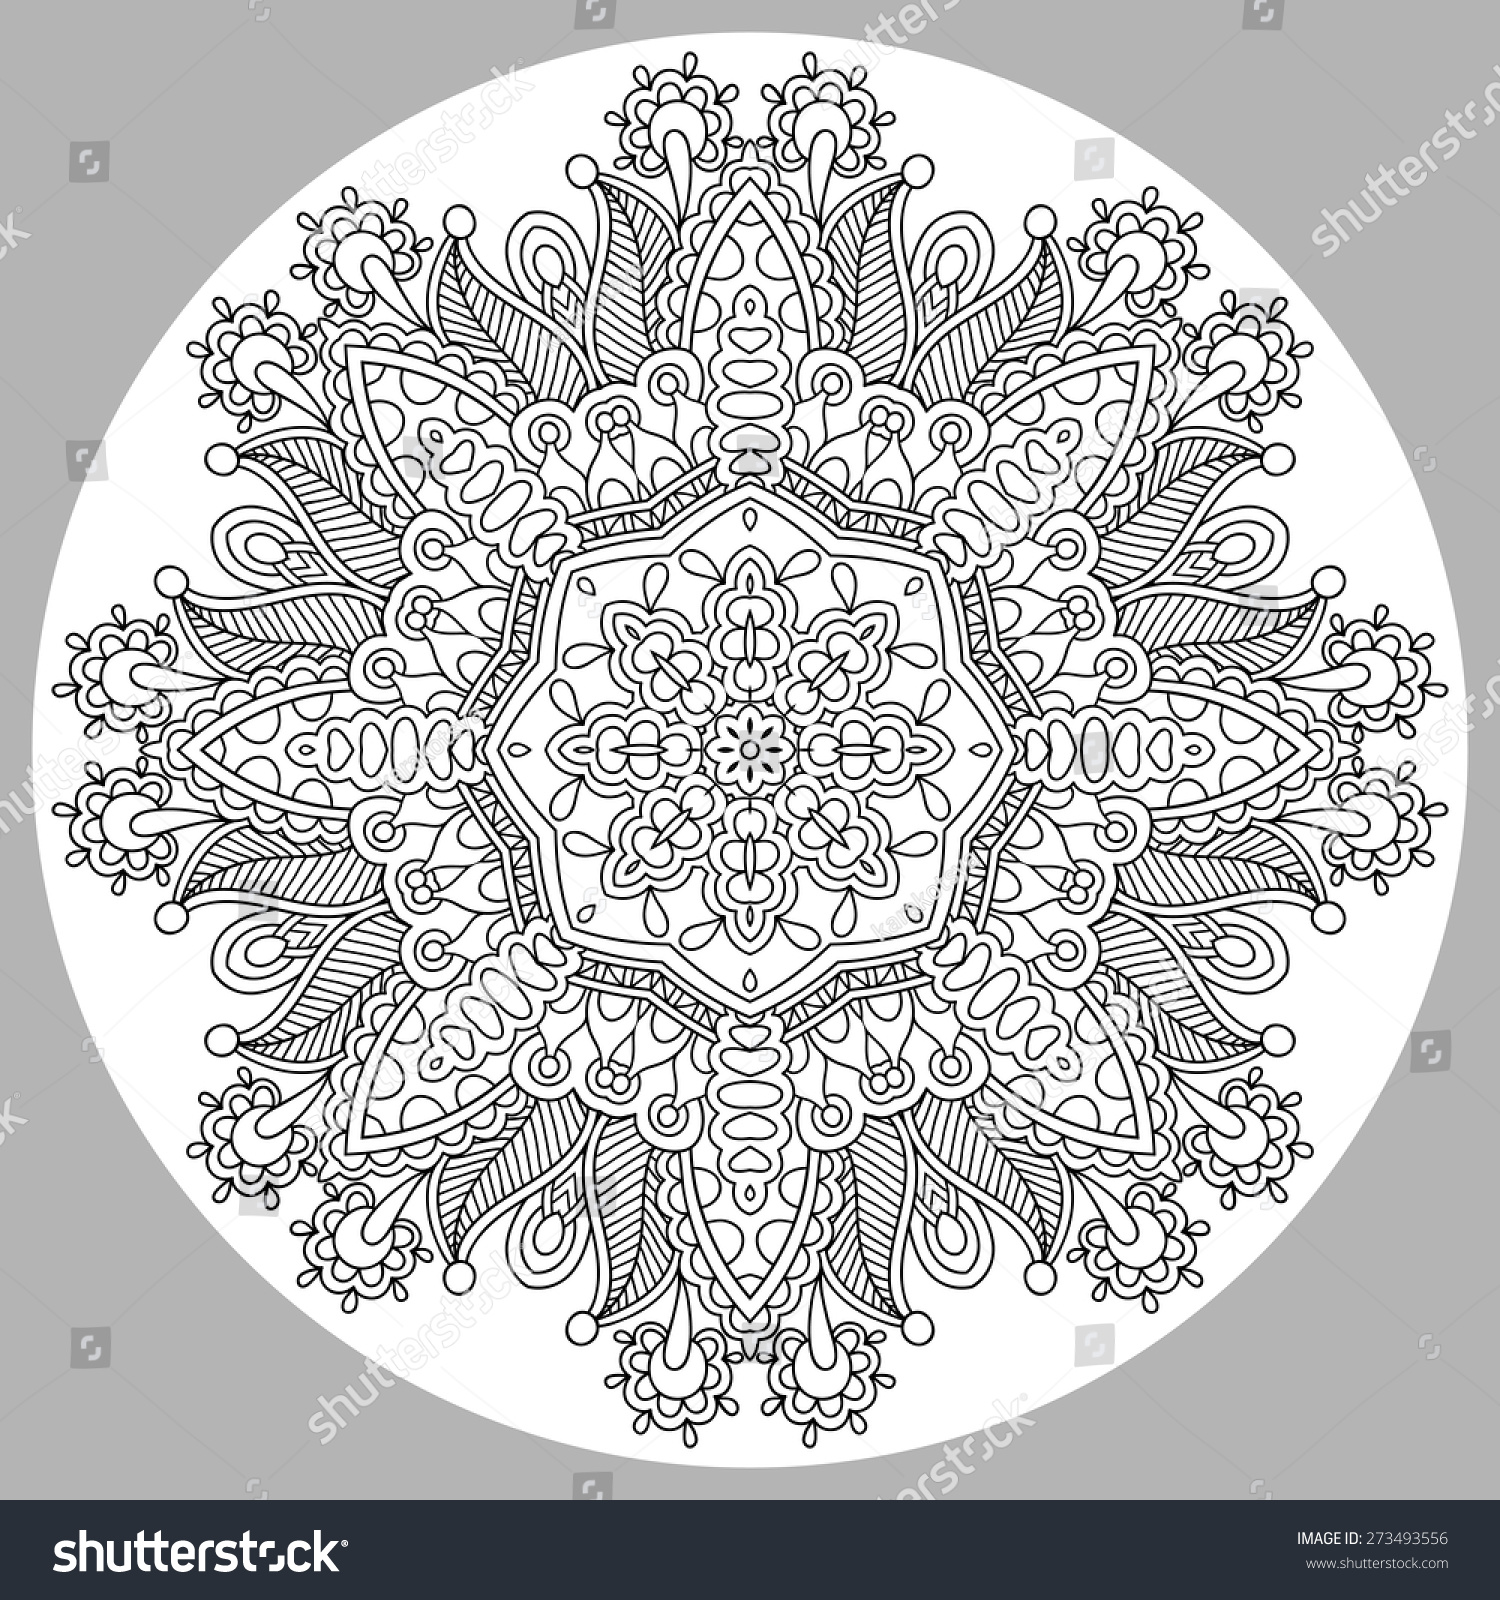 Coloring books for adults and children - Coloring Book Page For Adults Zendala Joy To Older Children And Adult Colorists